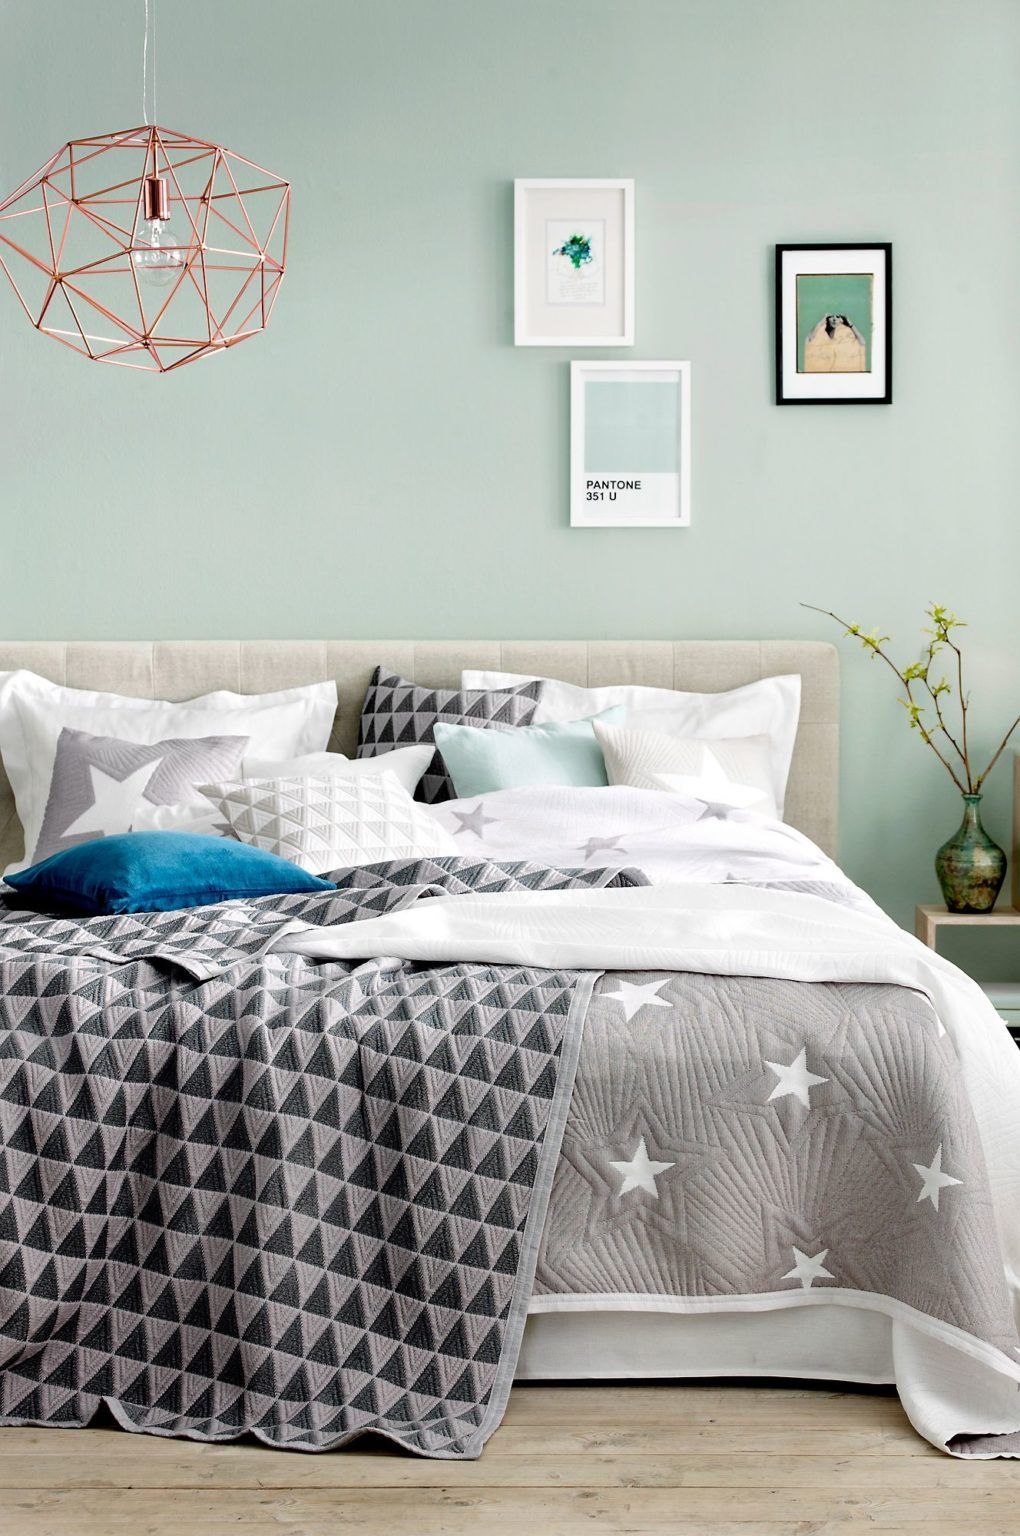 The Best Bedroom Paint Colors For A Tranquil Interior Green Bedroom Decor Seafoam Green Bedroom Mint Green Bedroom Tranquil bedroom paint colors